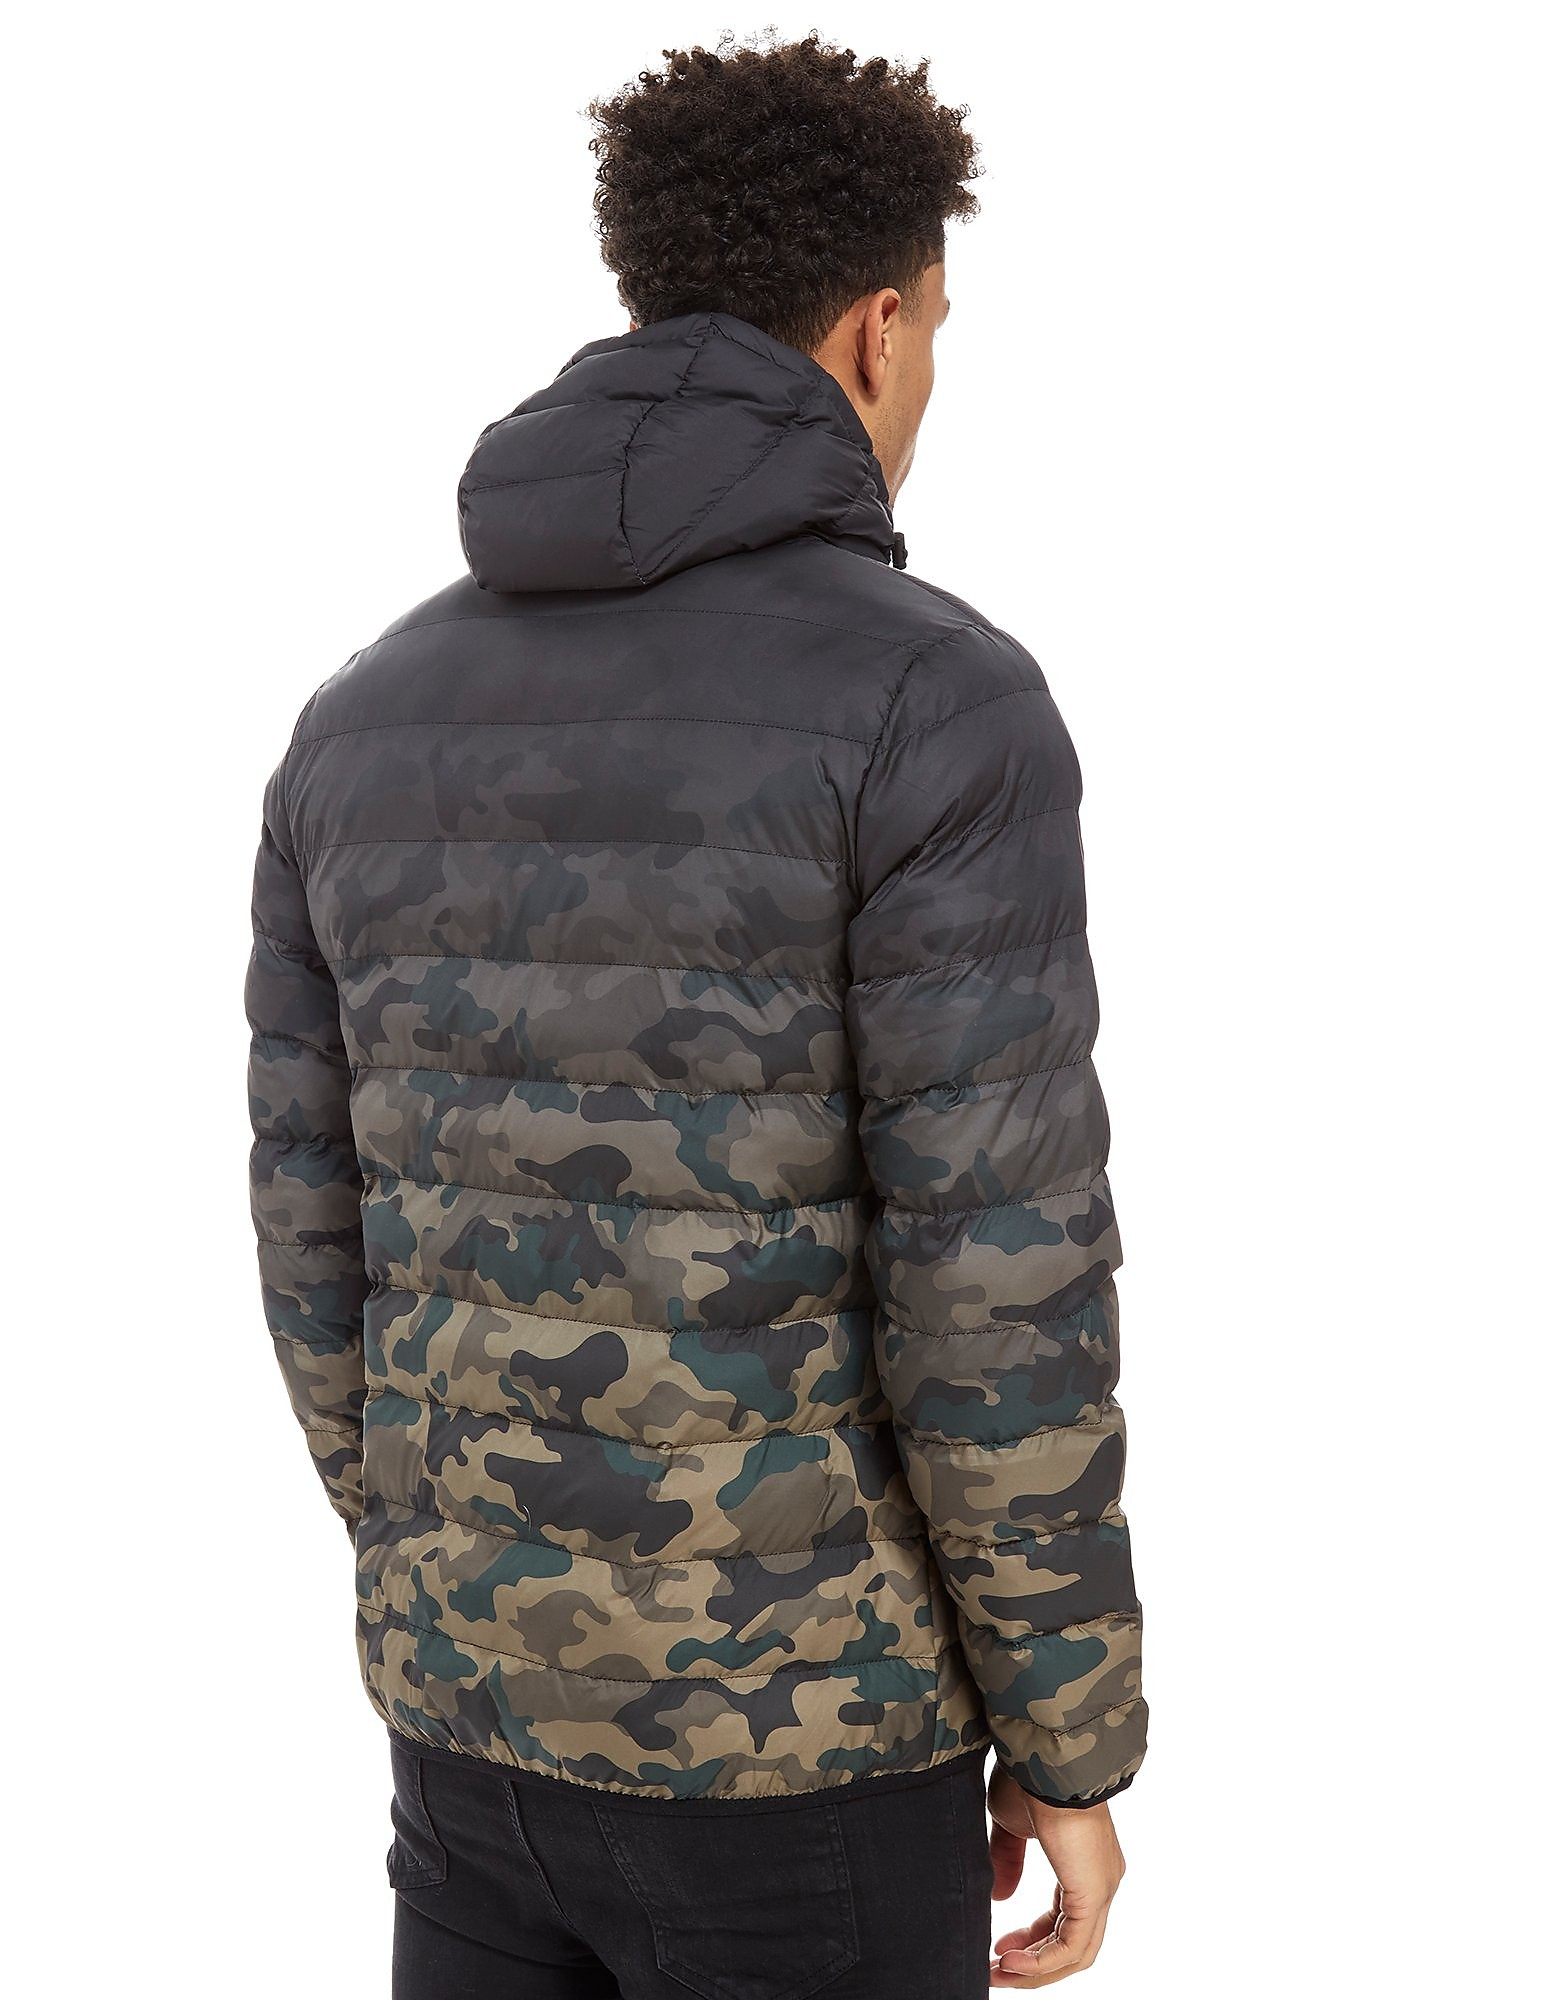 Supply & Demand Road Jacket